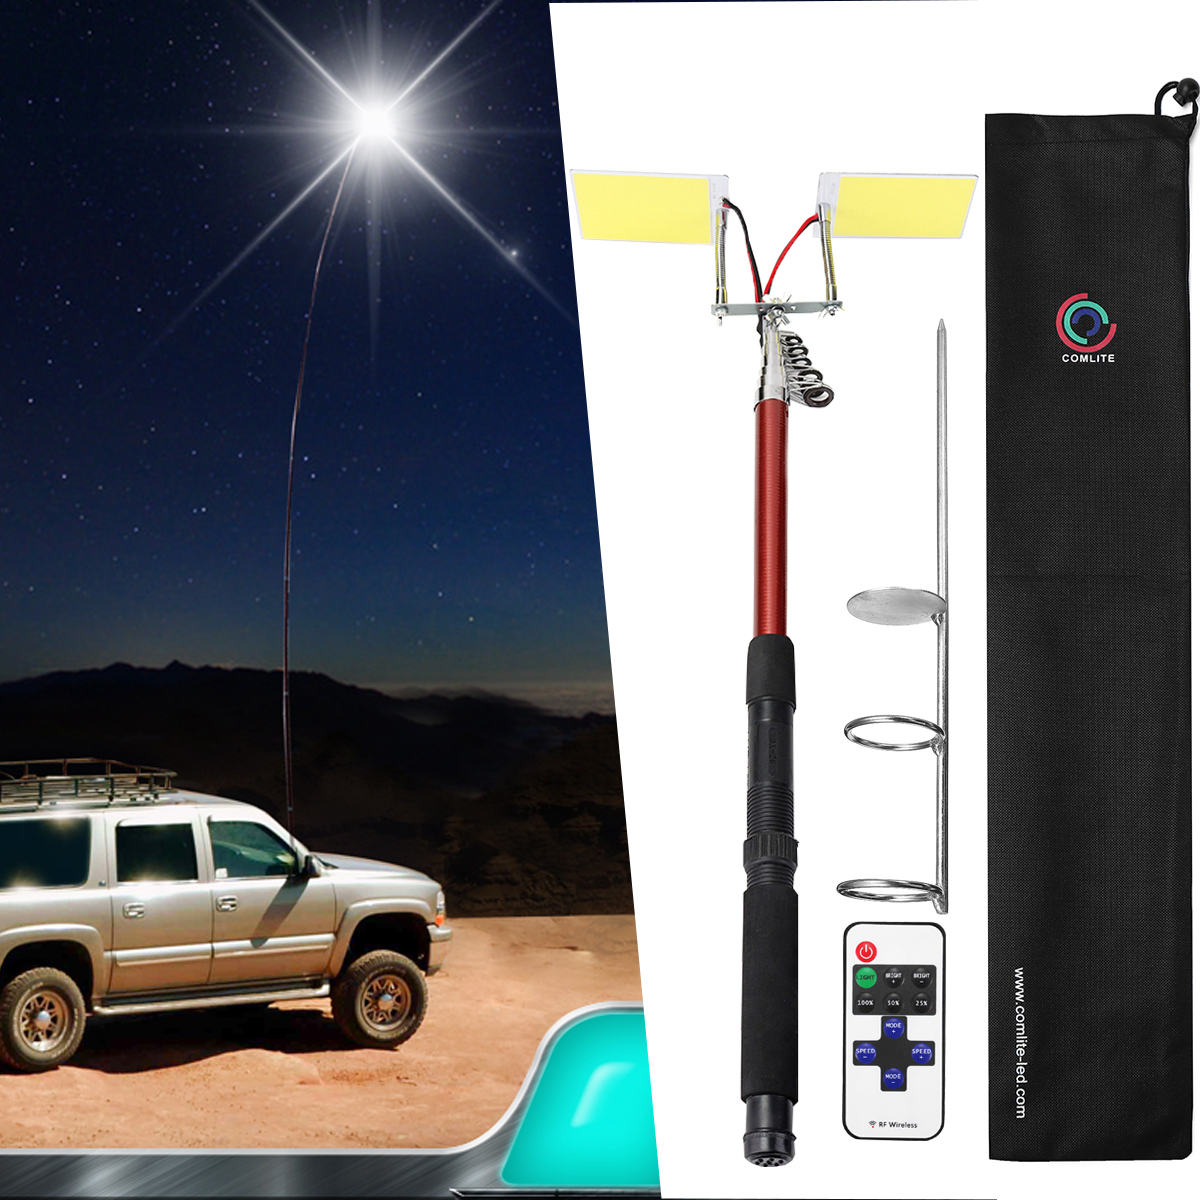 3.75M 12V Telescopic LED Fishing Rod Outdoor Lantern Camping Lamp Light For Road Trip Self-drive Travelling With Remote Control